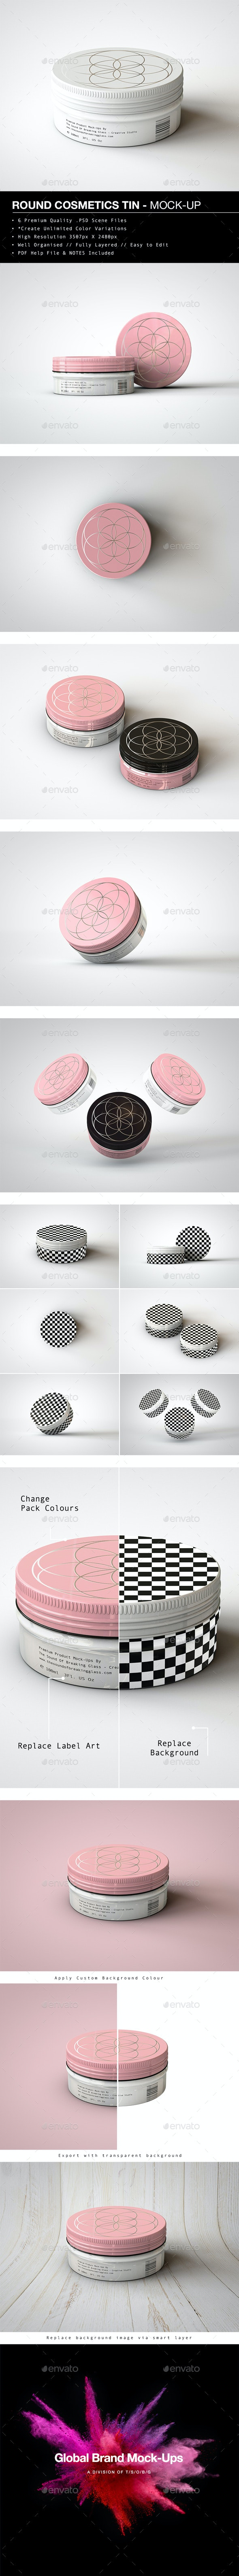 Round Cosmetics Tin Mock-Up | Metal Container Mock-Up - Beauty Packaging